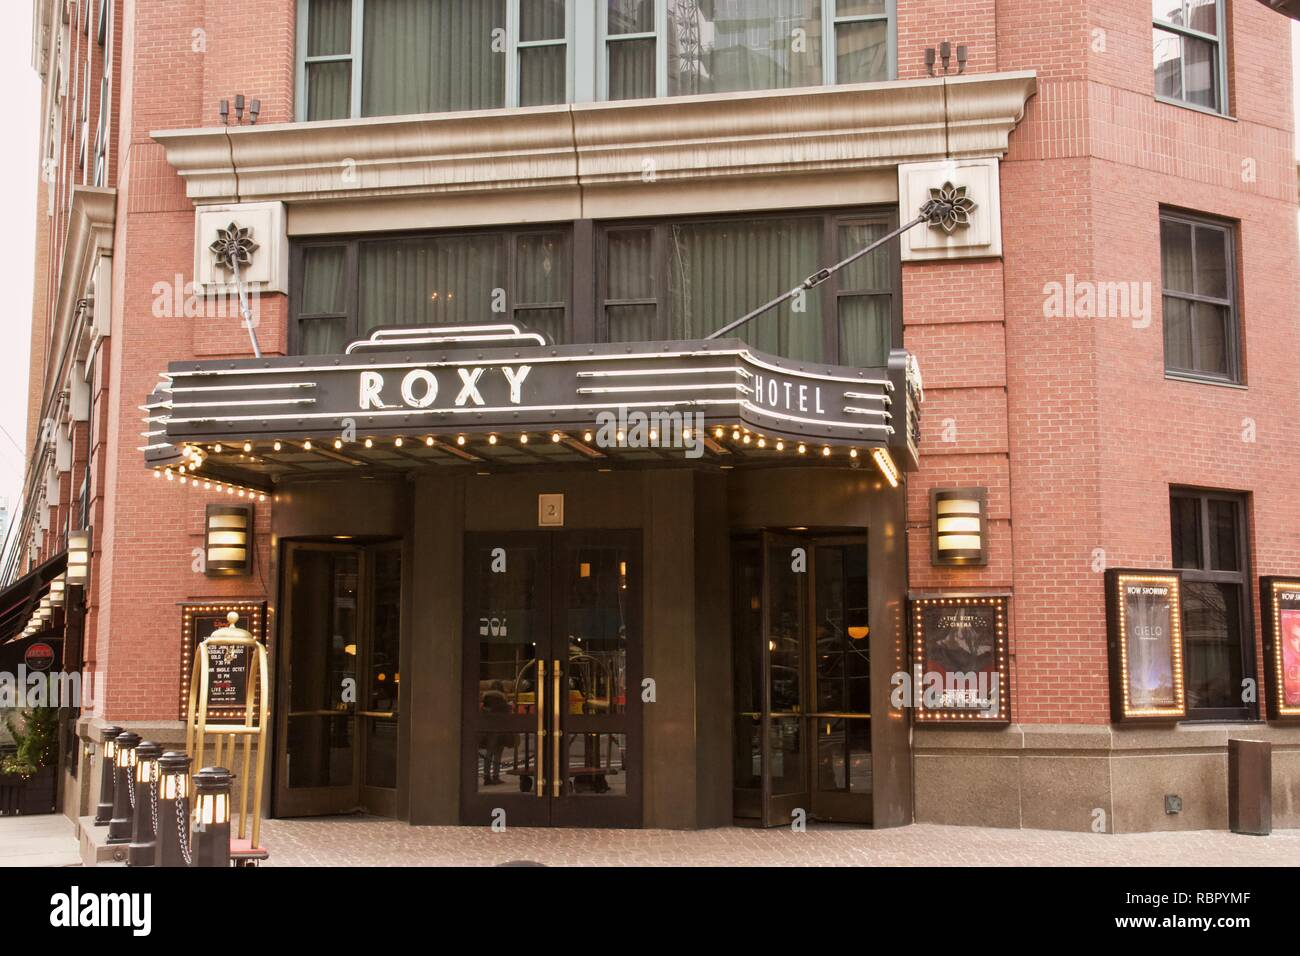 The Roxy Hotel, formerly the Tribeca Grand Hotel, is situated in the Tribeca neighborhood of Lower Manhattan, New York City - Stock Image